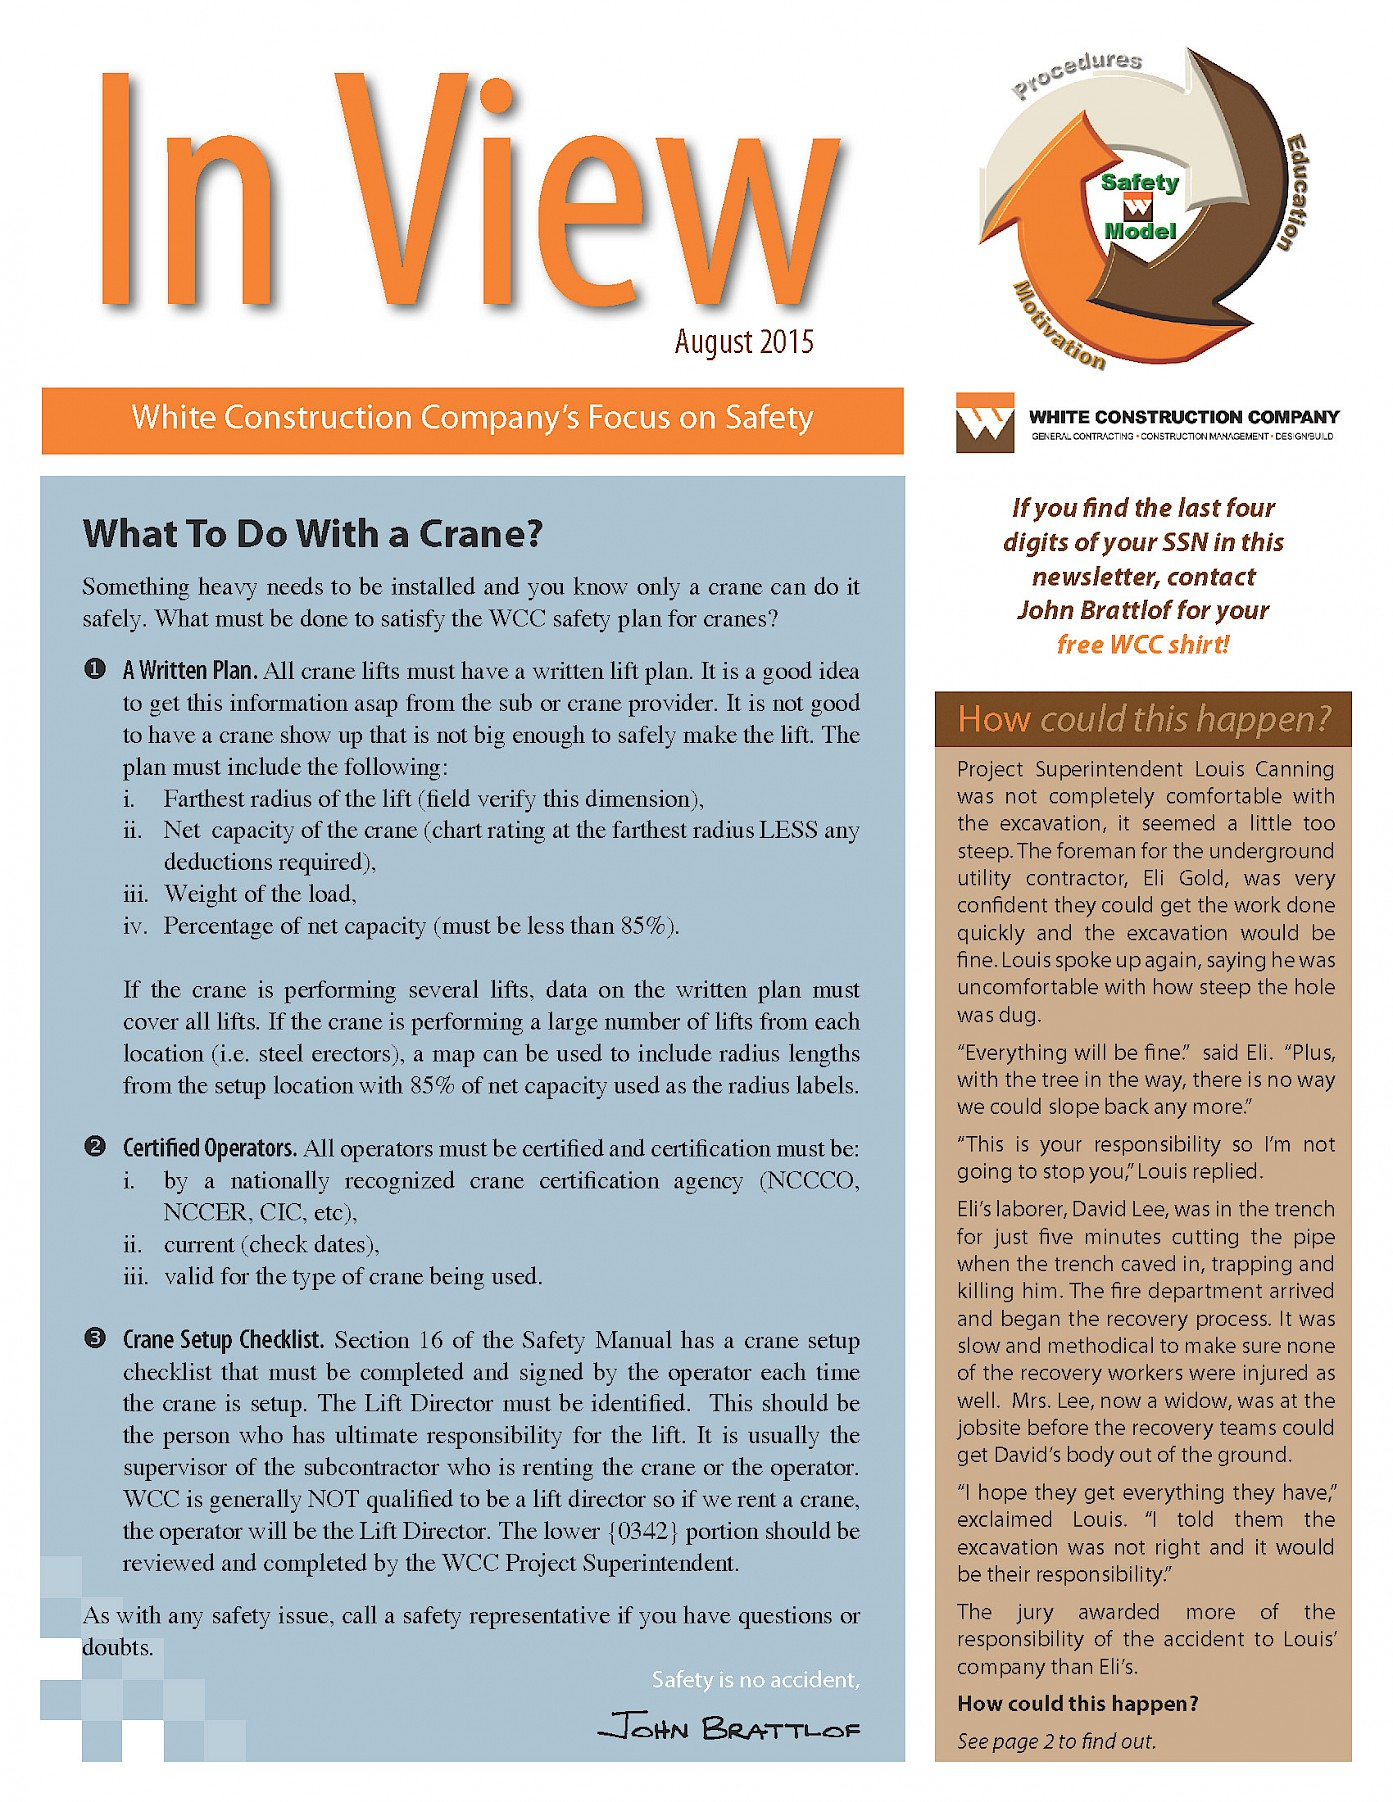 WCC Safety Newsletter, August 2015 | White Construction Company